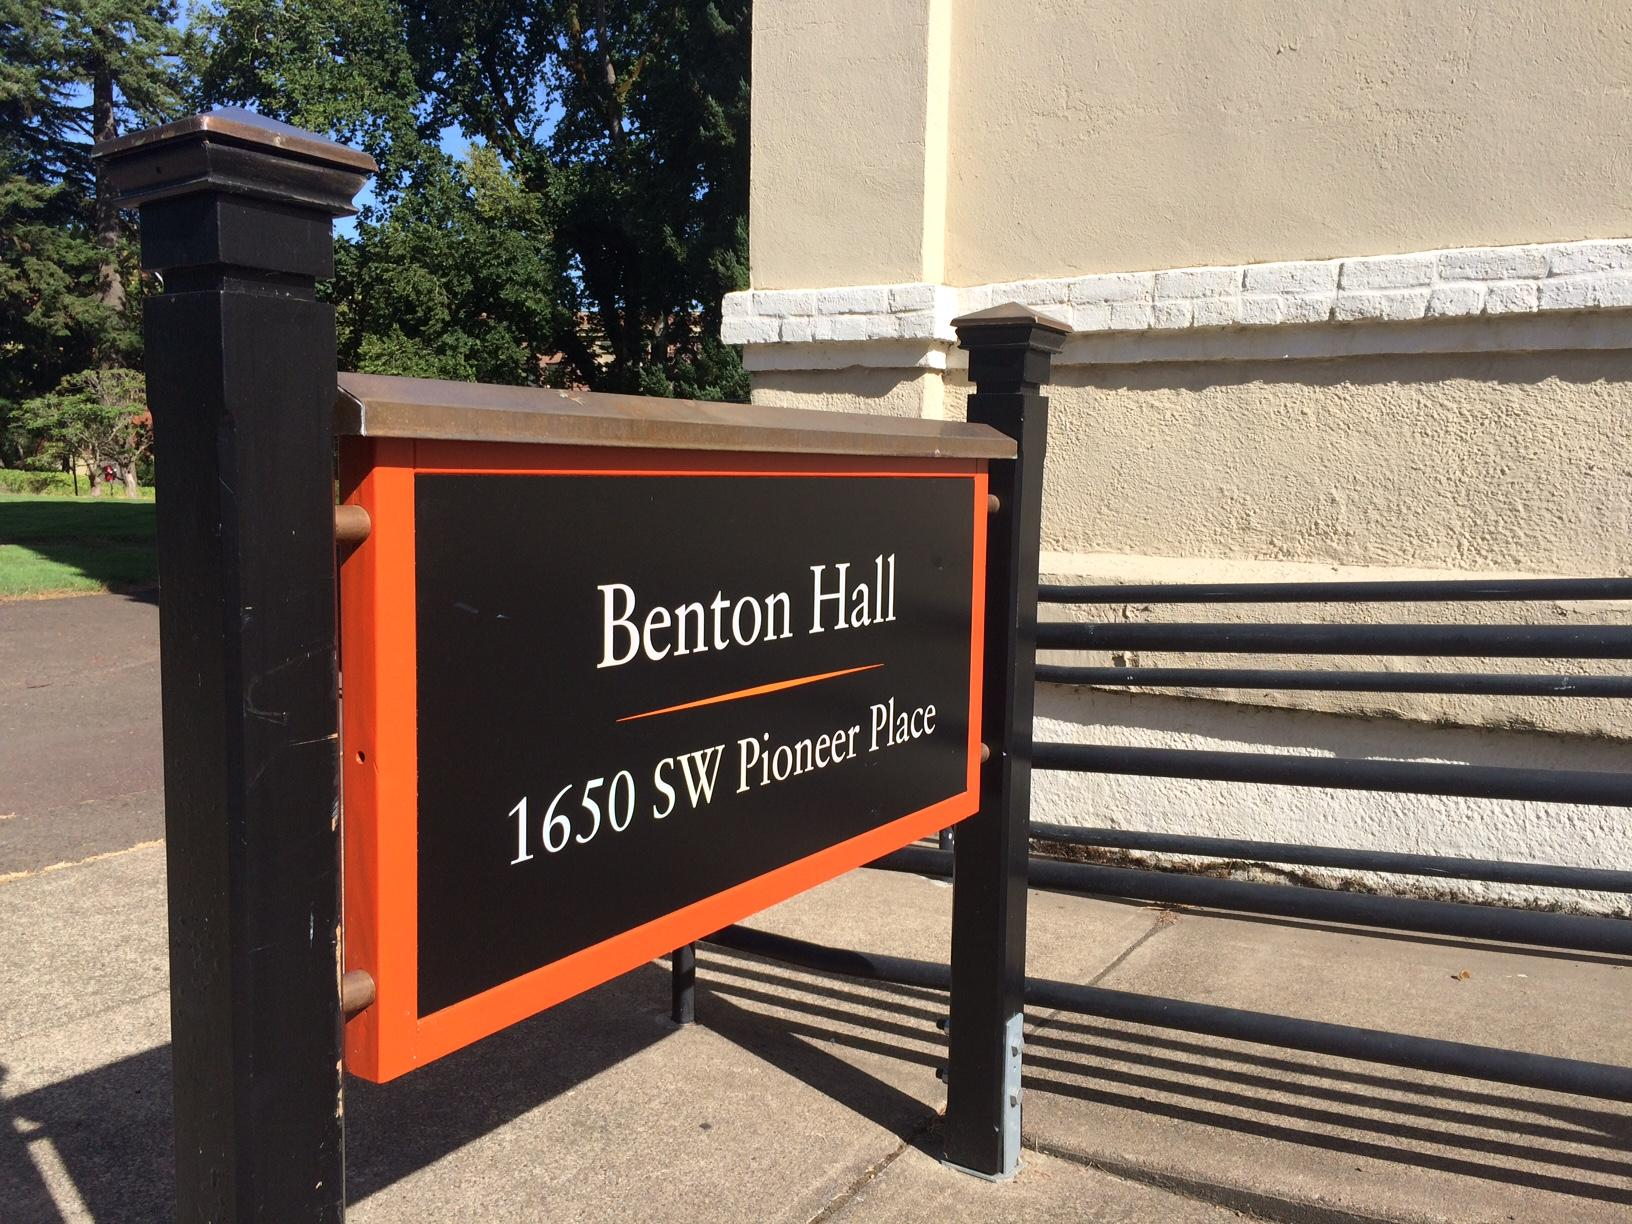 &quot;The university sought to honor the residents of Benton County in 1947 by naming OSU's first building, Benton Hall,&quot; OSU President Ed Ray writes. &quot;History shows that members of the community remarkably raised a significant amount of funds for the construction of the building in January 1887. This same community has since supported the university and its mission. In contrast, according to the scholar's report and naming review process, the name of this building does not seek to honor former Missouri U.S. Sen. Thomas Hart Benton, who in the 1820's through the 1850's, was a national architect of westward expansion and promoter of Manifest Destiny, and for whom Benton County is named. During that era, Benton supported federal legislation to remove Native Americans from their tribal lands and, while he was opposed to extending slavery into western states, he was not in favor of abolishing slavery elsewhere. The current name of the building does not make this distinction clear.&quot;<p></p>